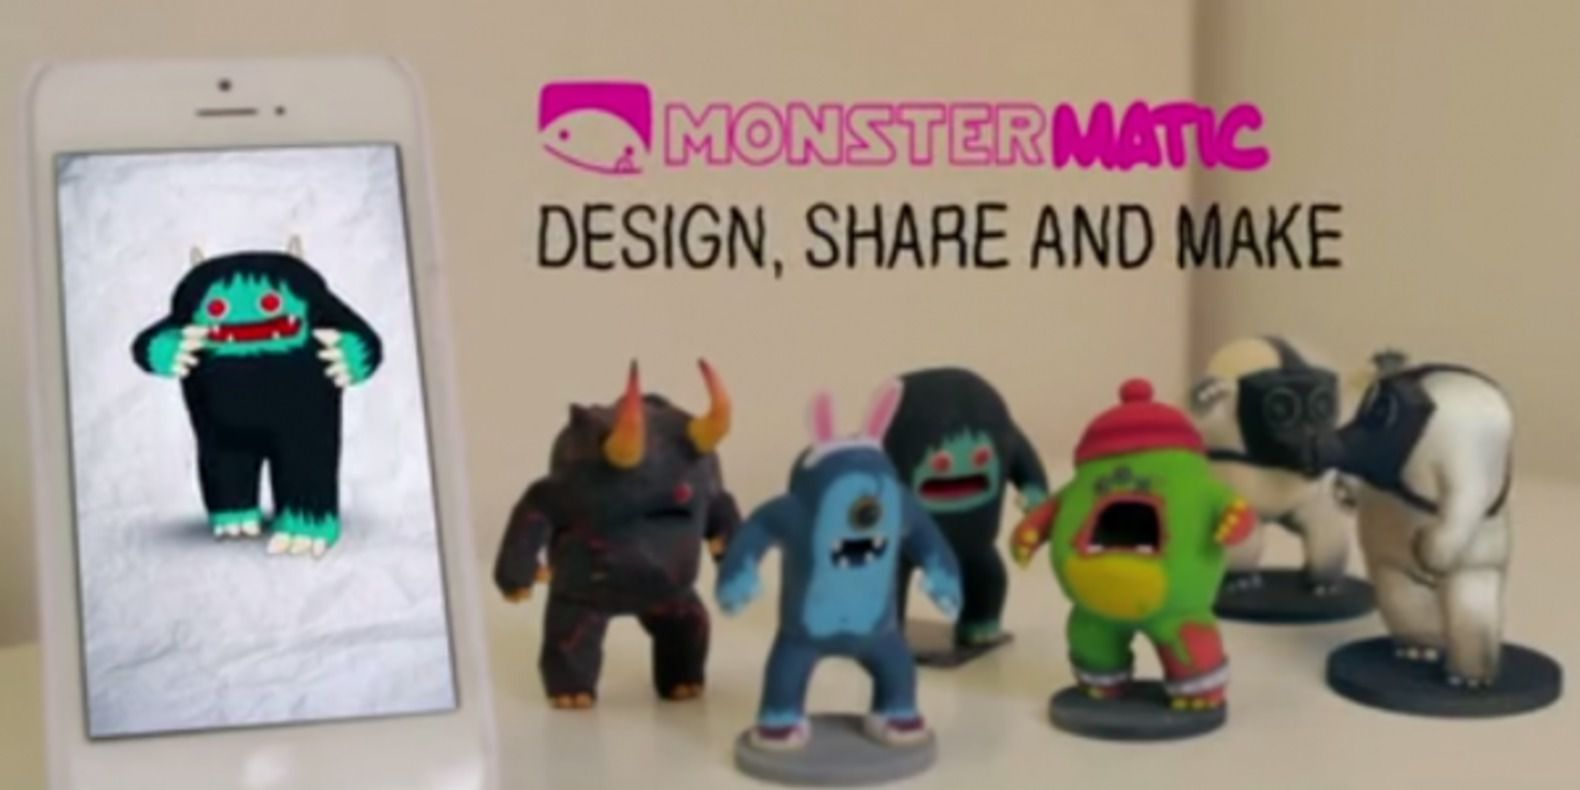 Monstermatic, the monsters to customize and print in 3D